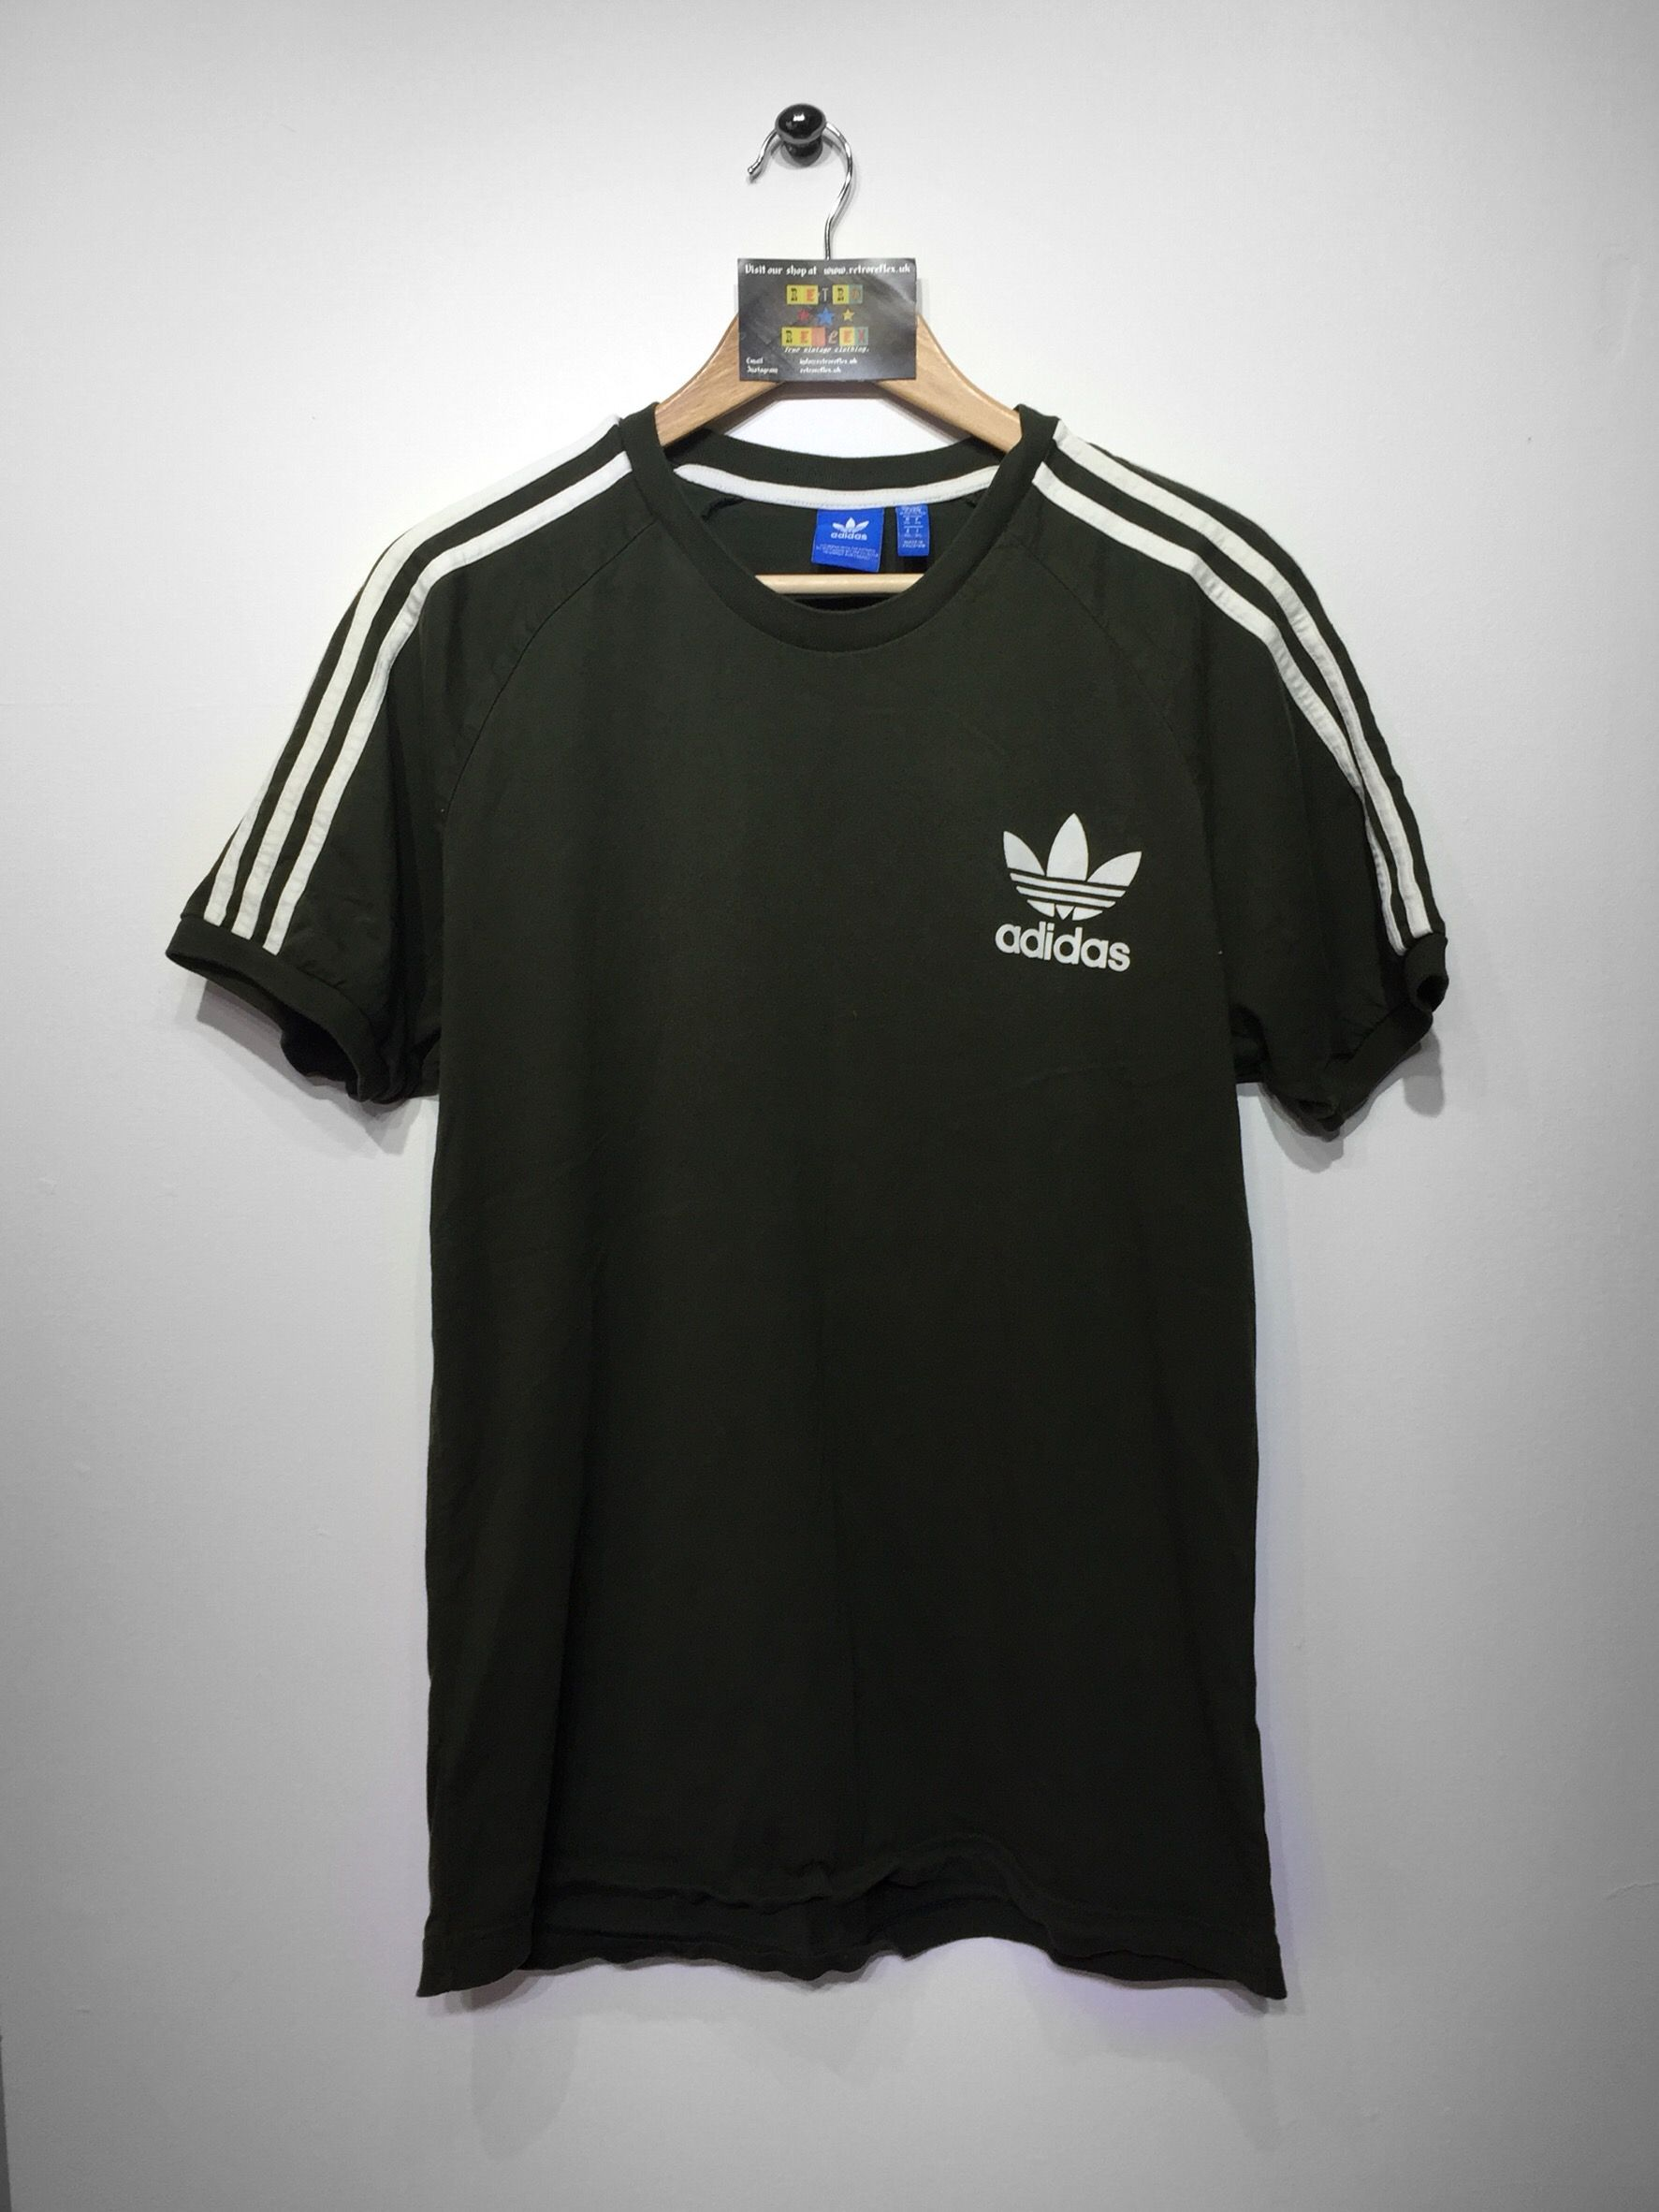 a31f2042 Adidas T-Shirt Size X/Large £16 Website➡ www.retroreflex.uk ...